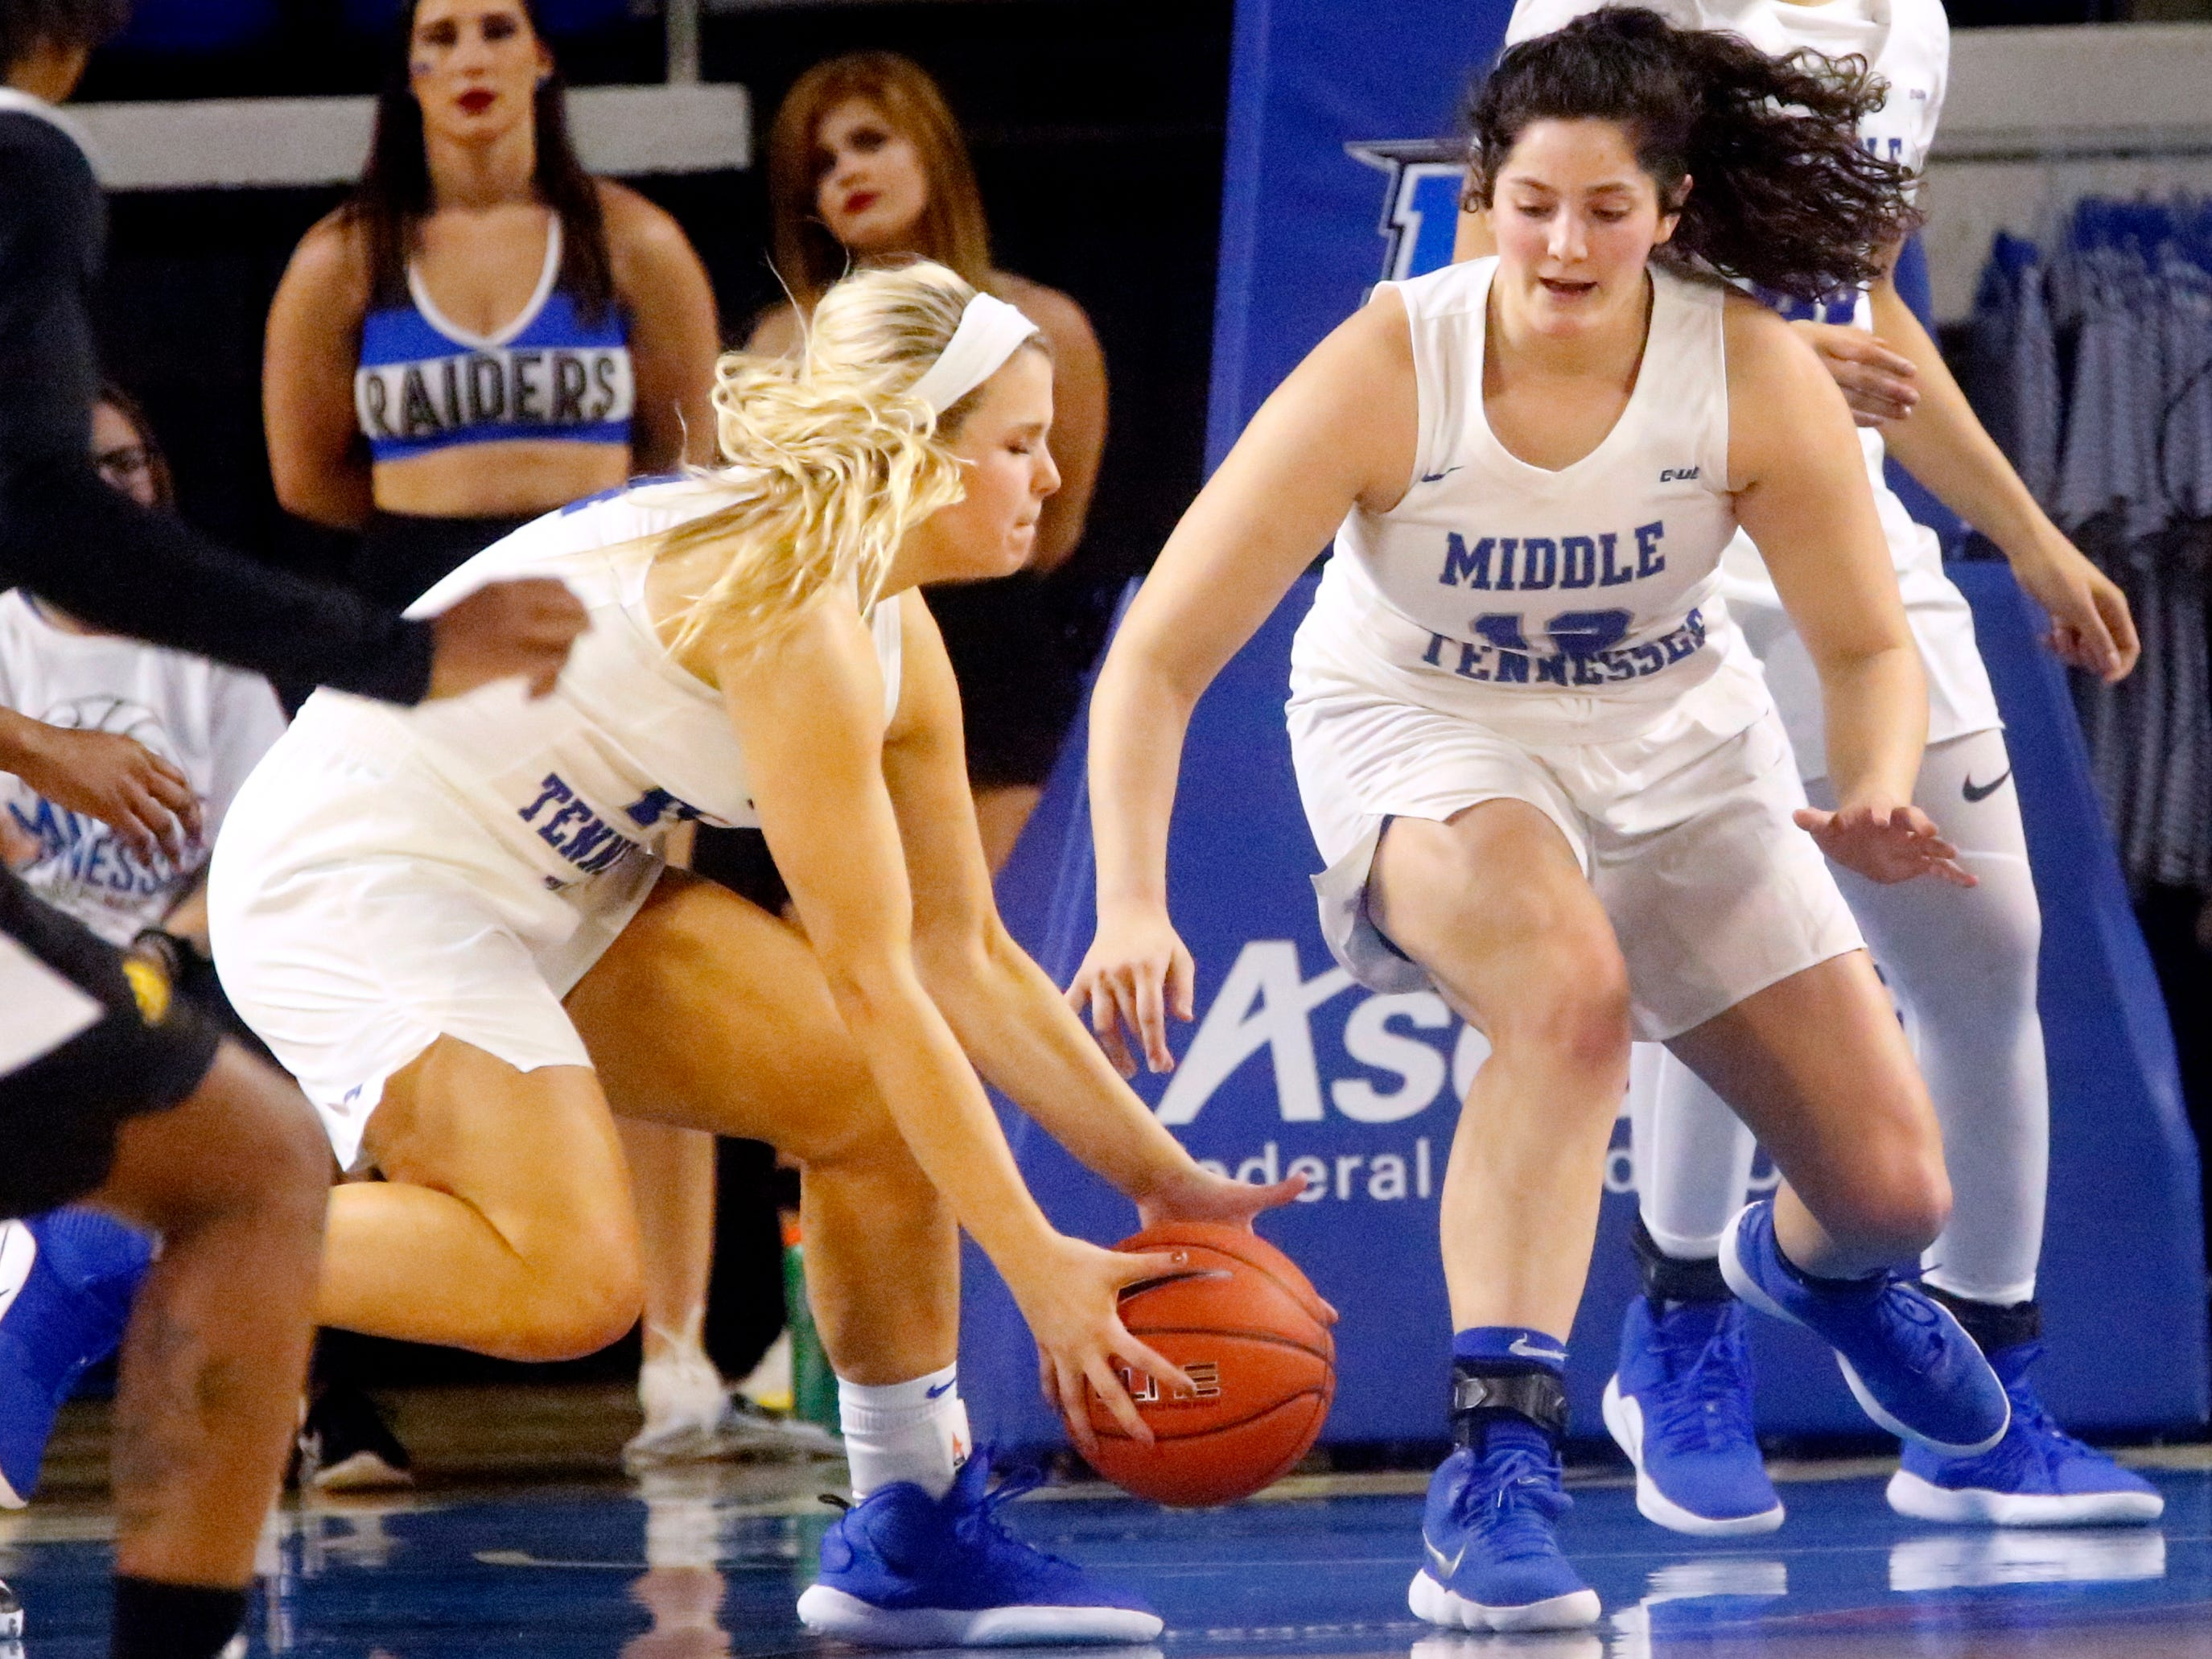 MTSU's guard Katie Collier (14) picks up a loose ball as MTSU's guard Jess Louro (12) goes after the same ball on Thursday Jan. 10, 2019 during the game against Southern Miss.